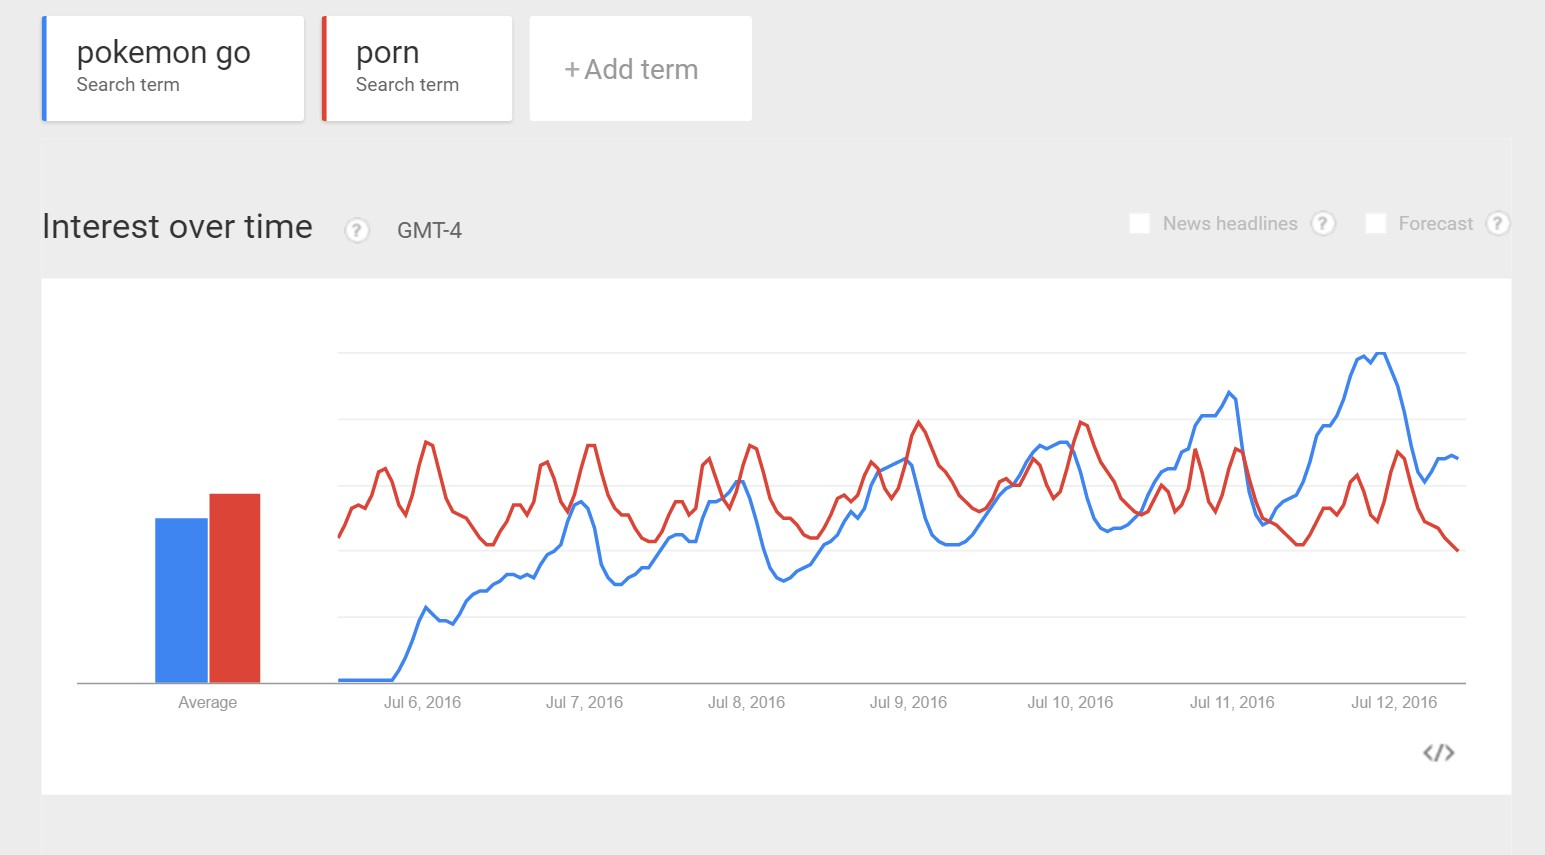 Pokemon Go Is Now More Popular Than Porn On The Internet